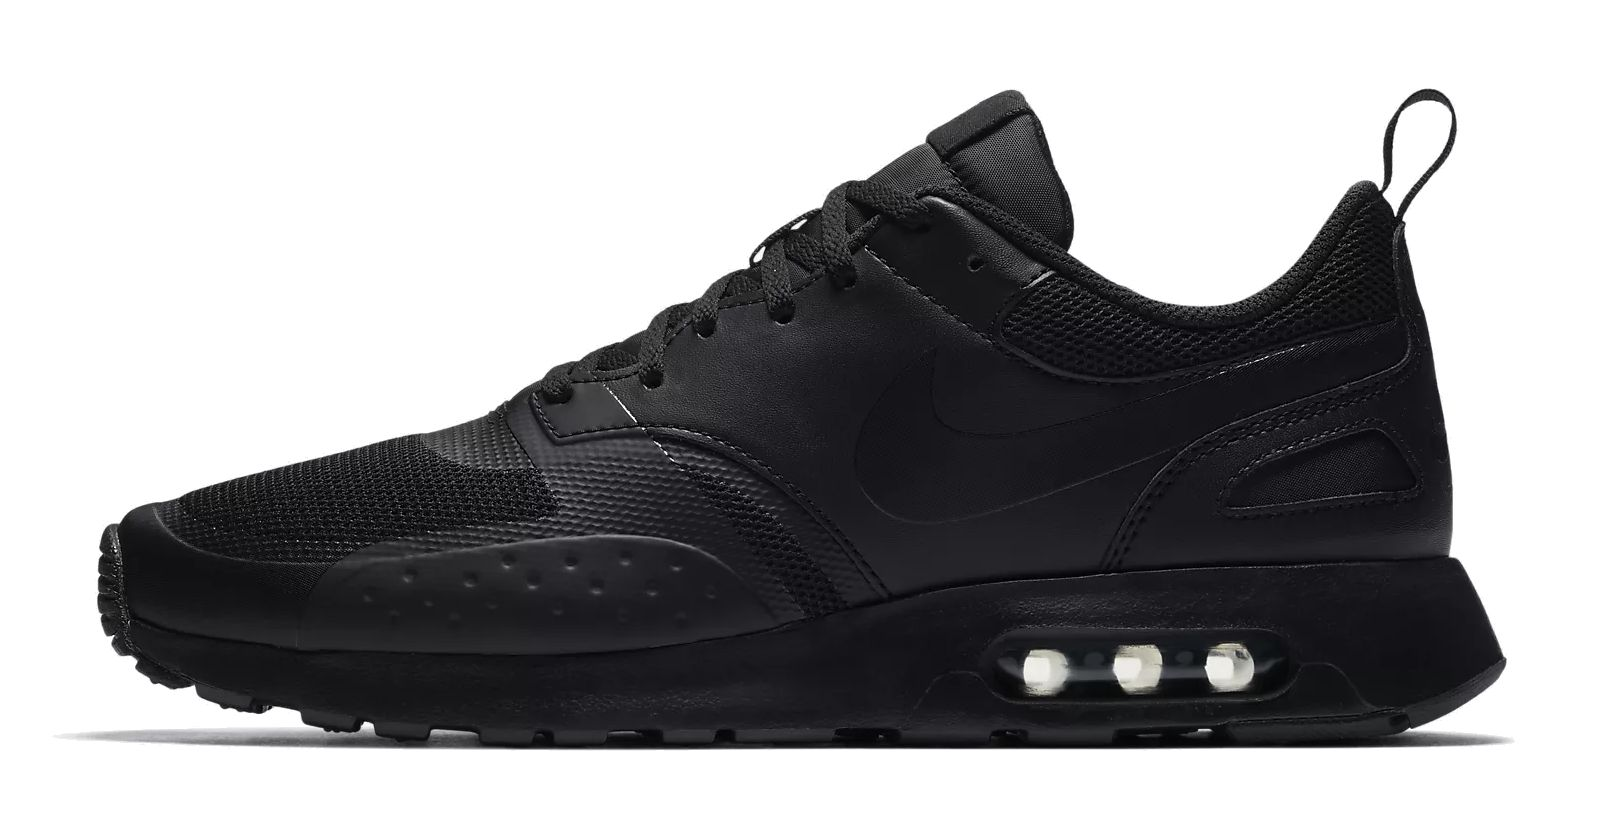 finest selection 507e1 a0eb6 ... new zealand nike herren freizeitschuh air max vision schwarz a063b 74da2